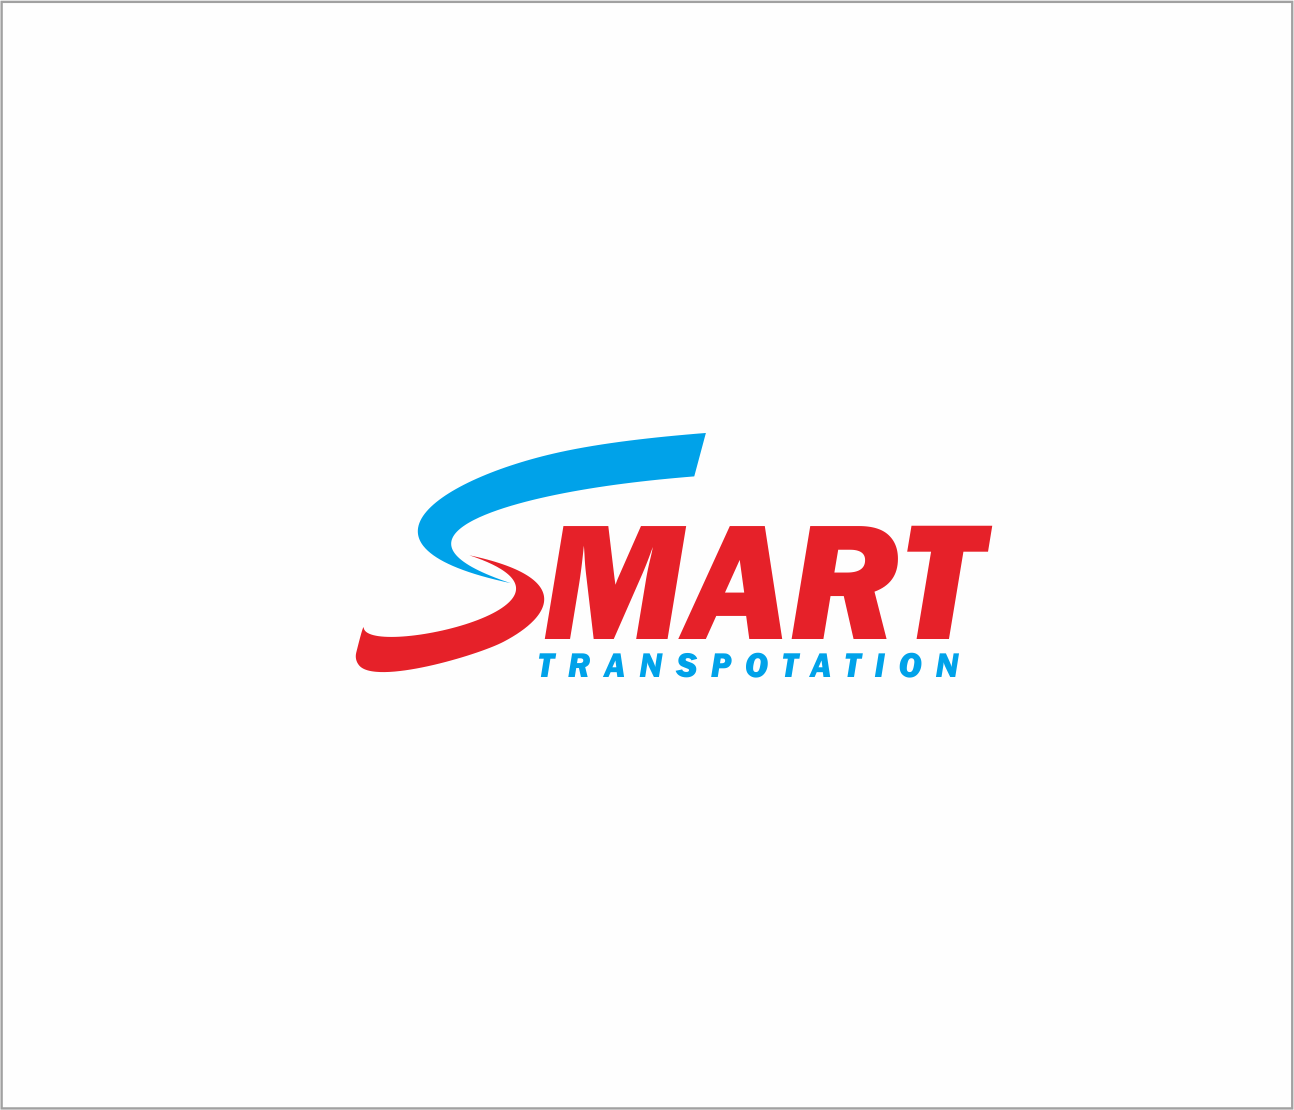 Logo Design by Armada Jamaluddin - Entry No. 66 in the Logo Design Contest Imaginative Logo Design for Smart Transportation.